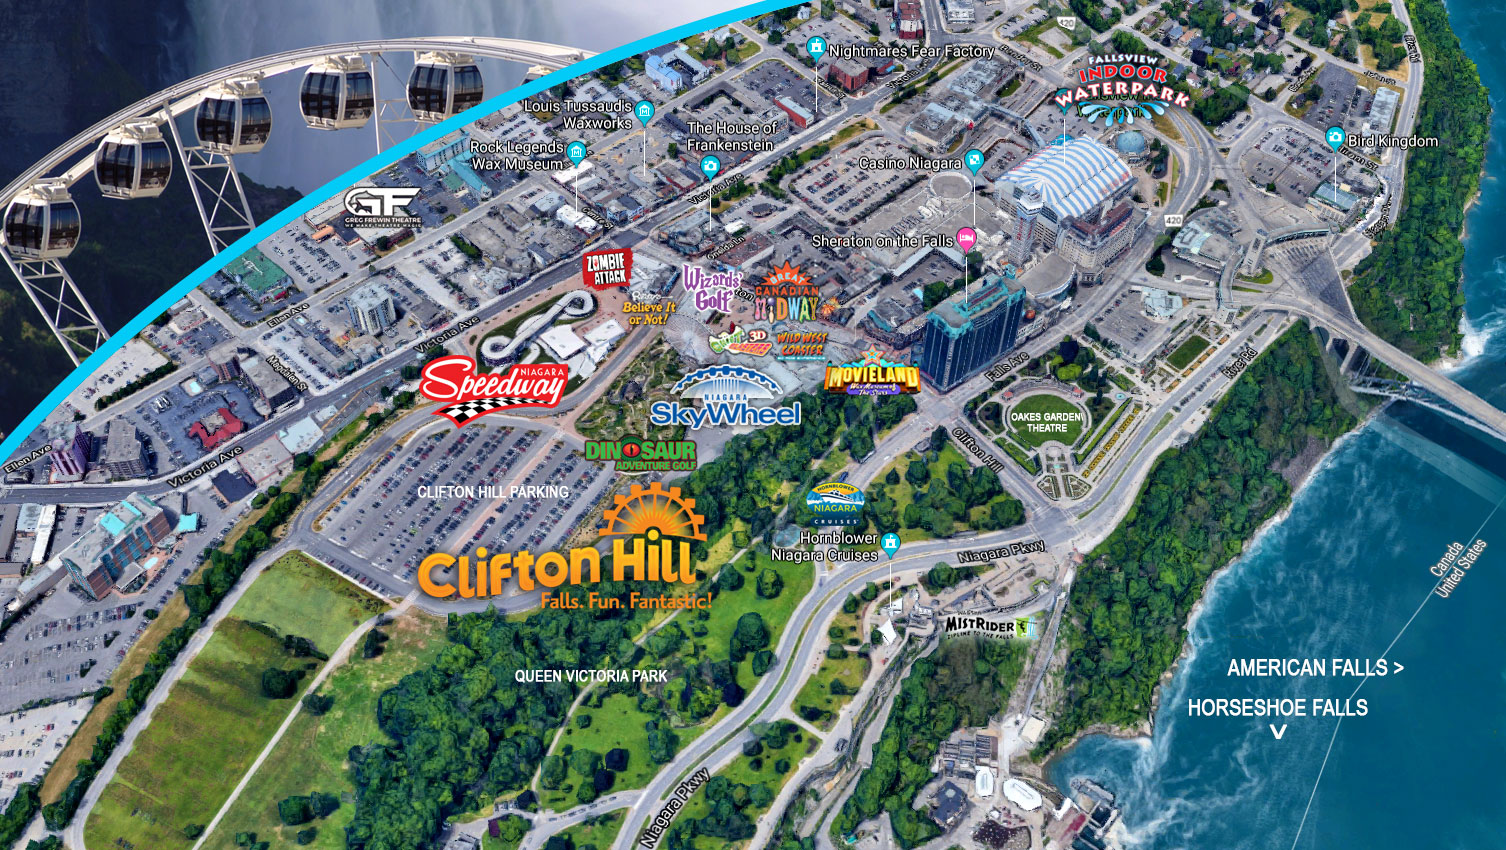 World Class Attractions Within A Block of Clifton Hill!